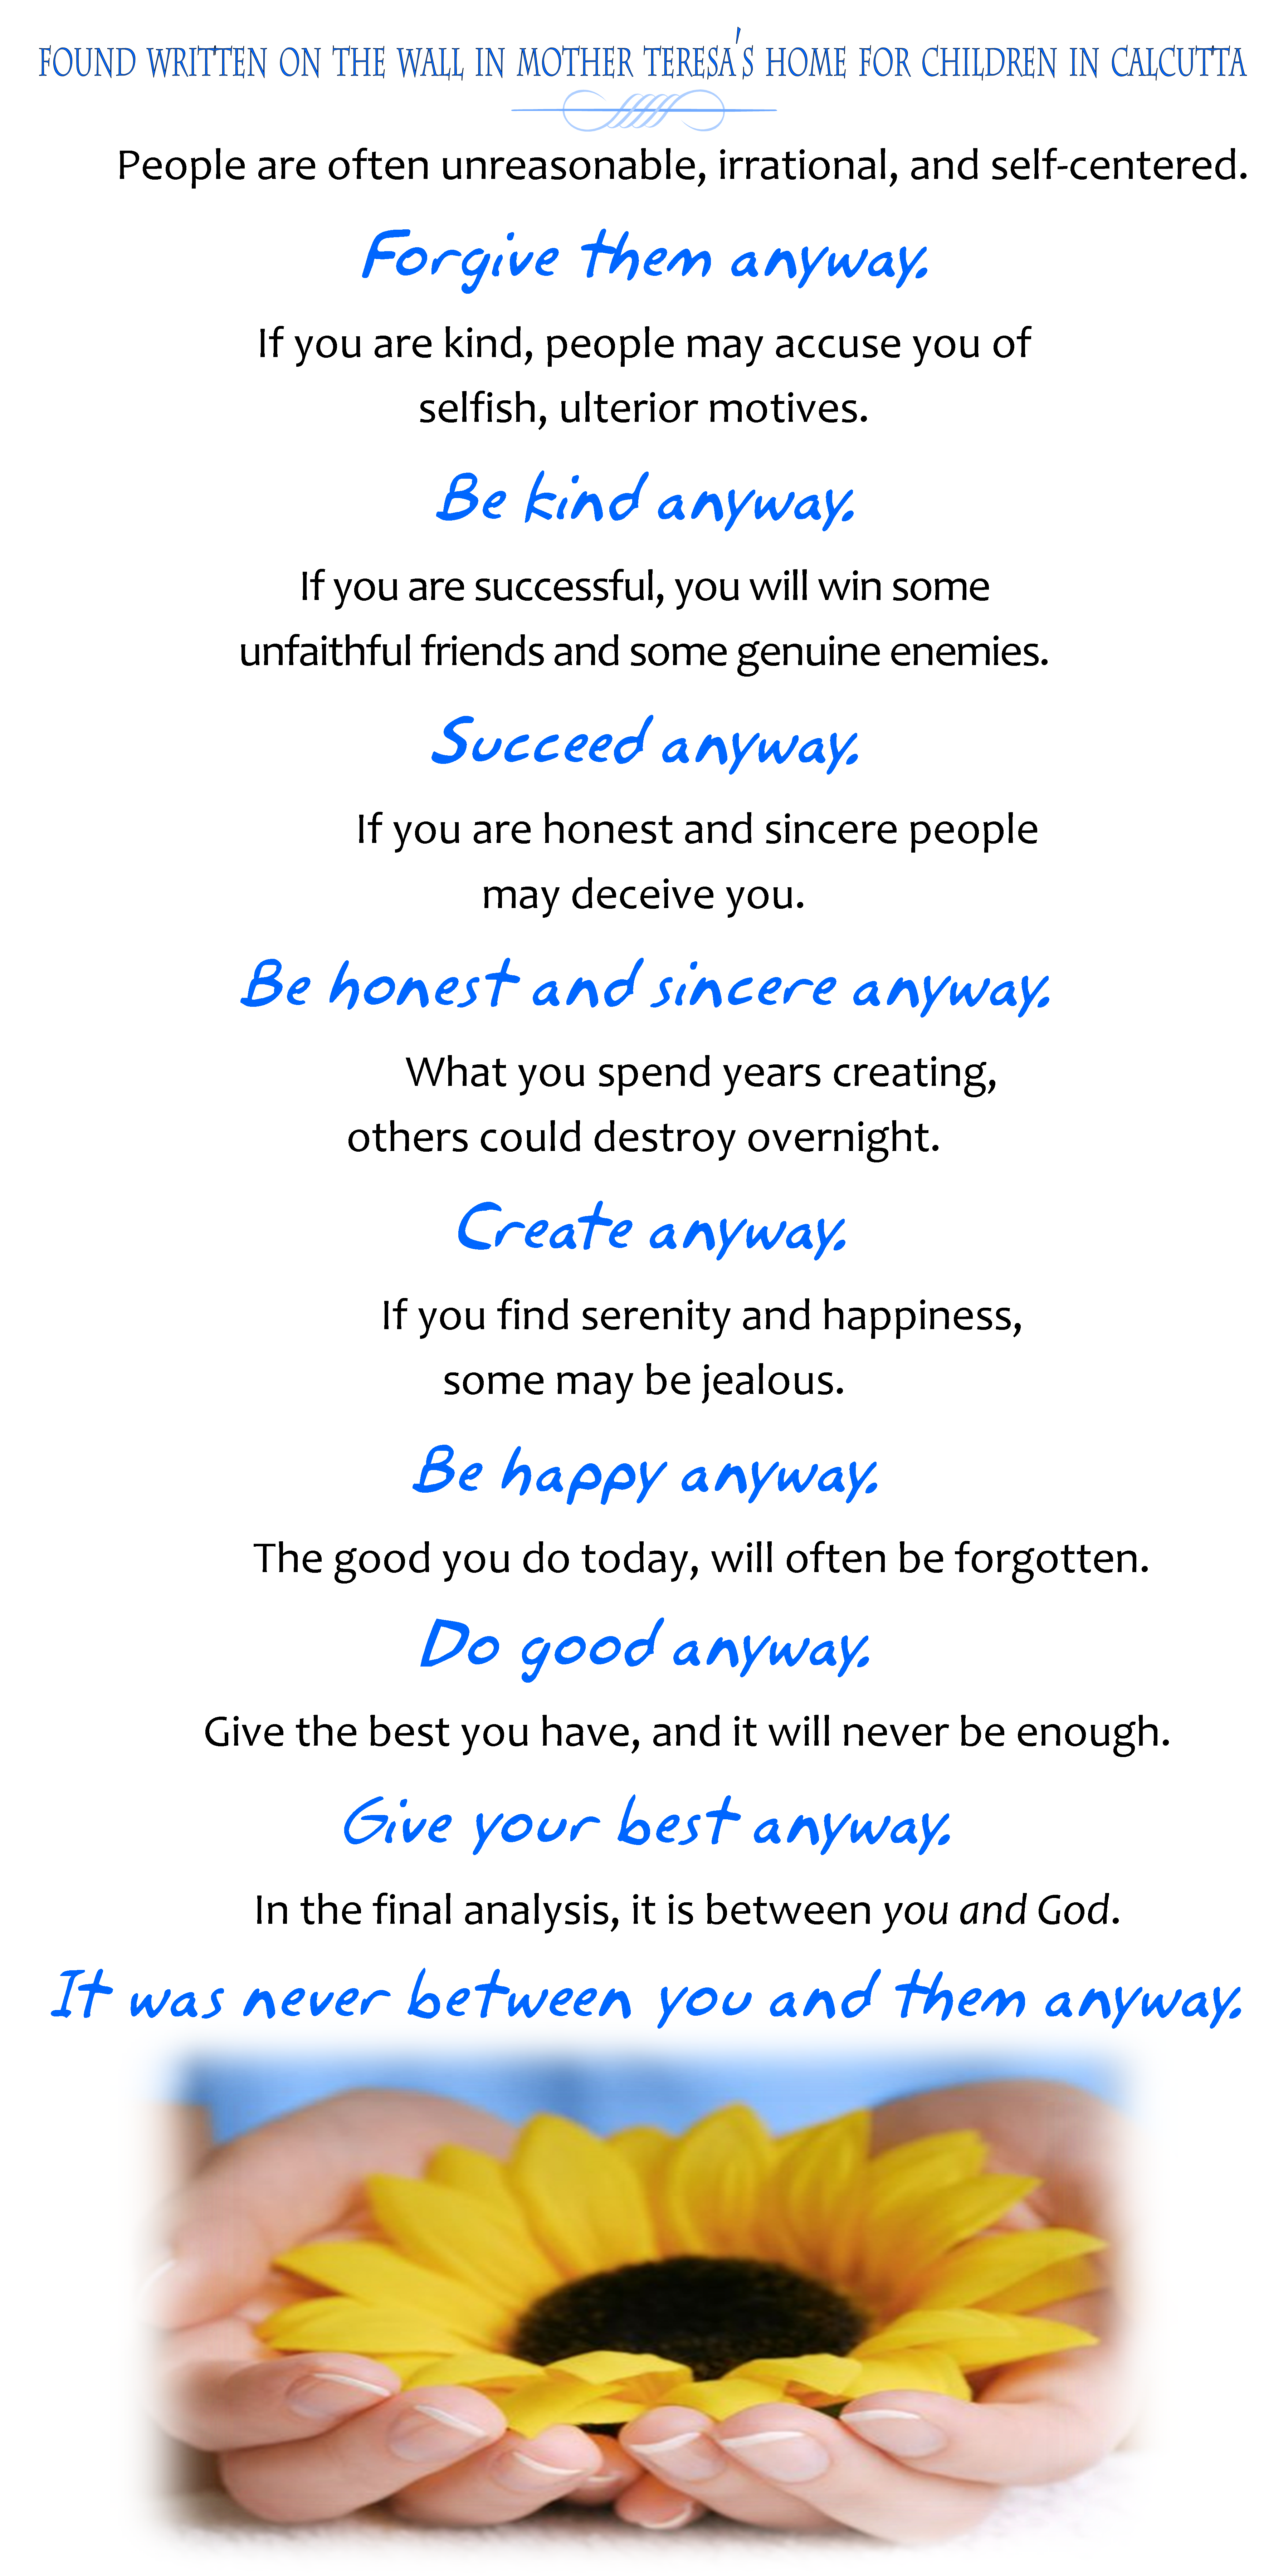 Mother Teresa Quotes Love Them Anyway Do It Anyway Posterversion Found On A Wall In Mother Teresa's